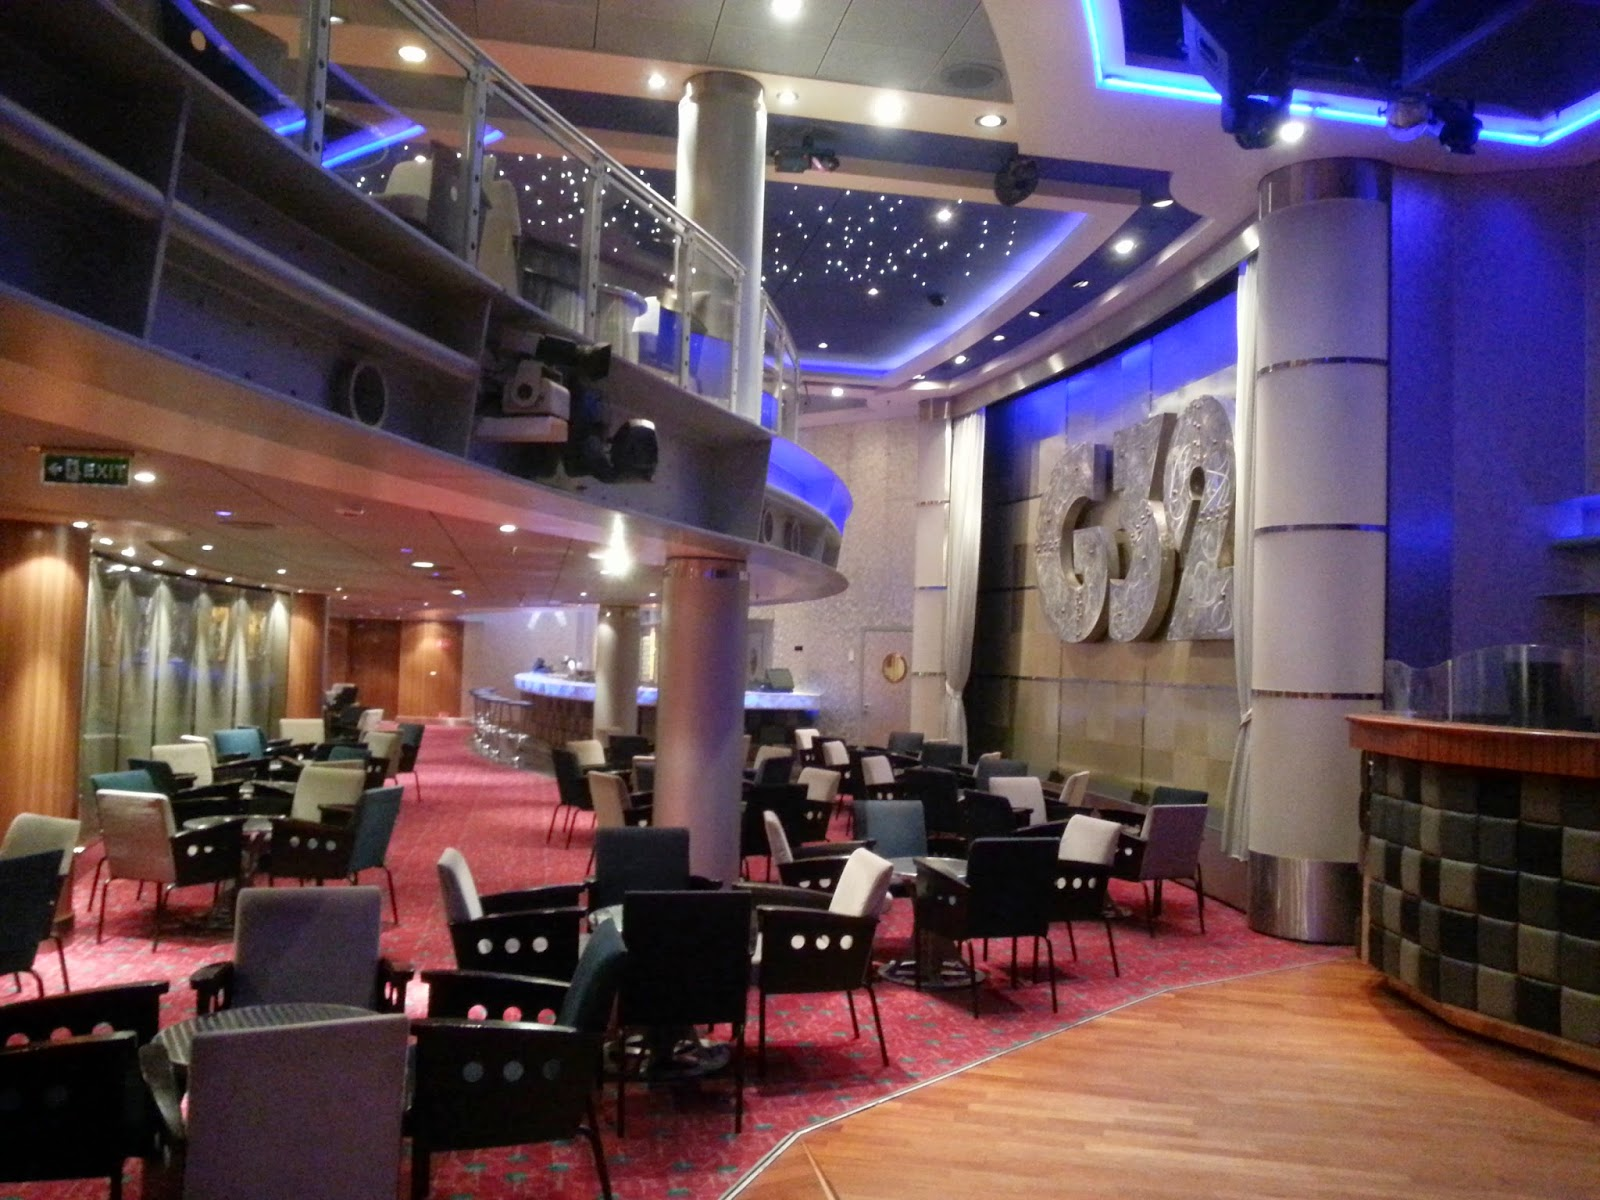 Queen Mary 2 (QM2) - G32 Nightclub